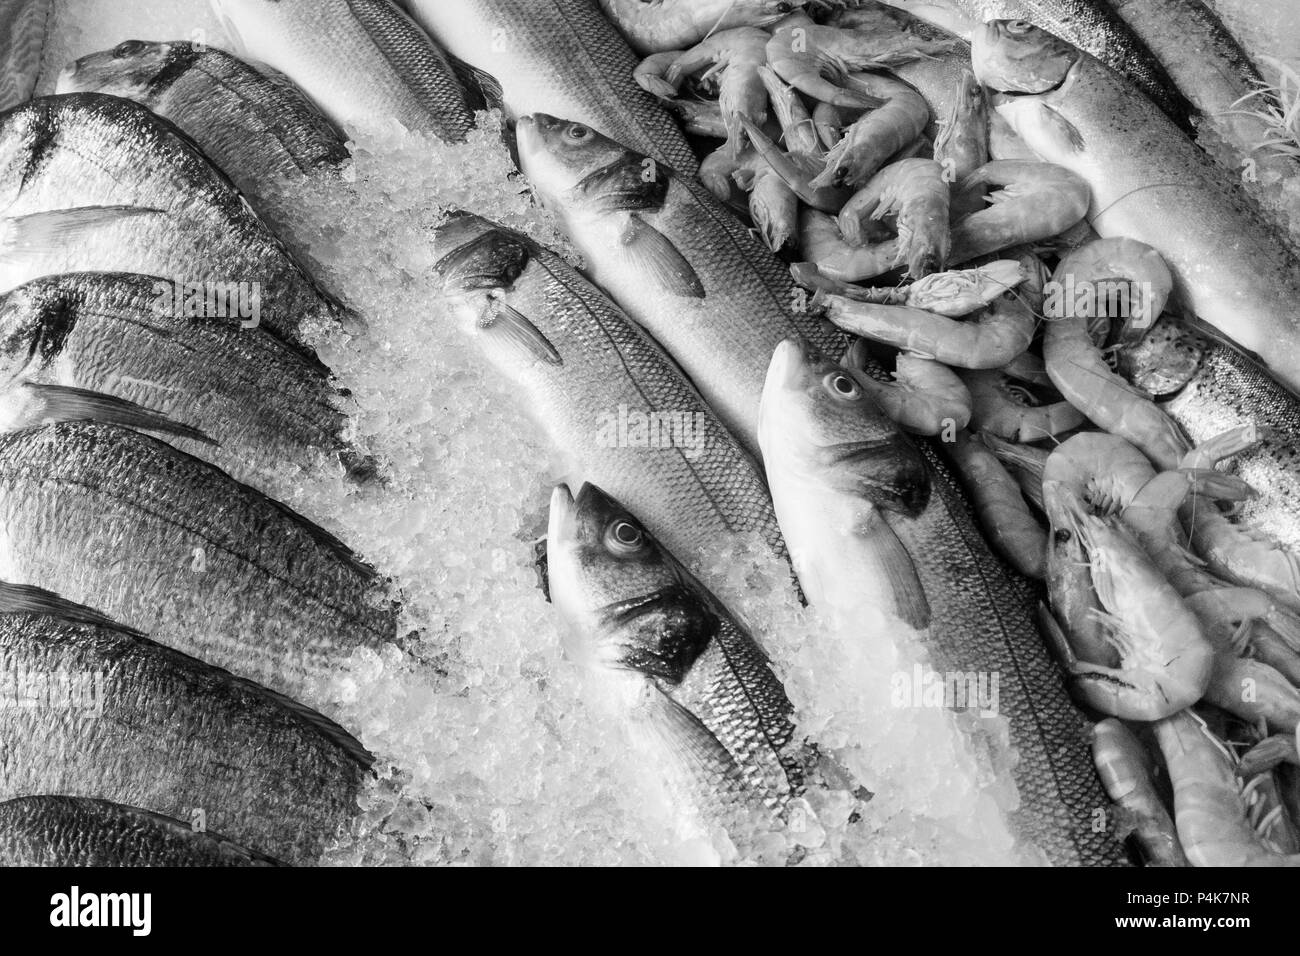 Black and white image of frozen fishes and prawns on ice in fish market - Stock Image